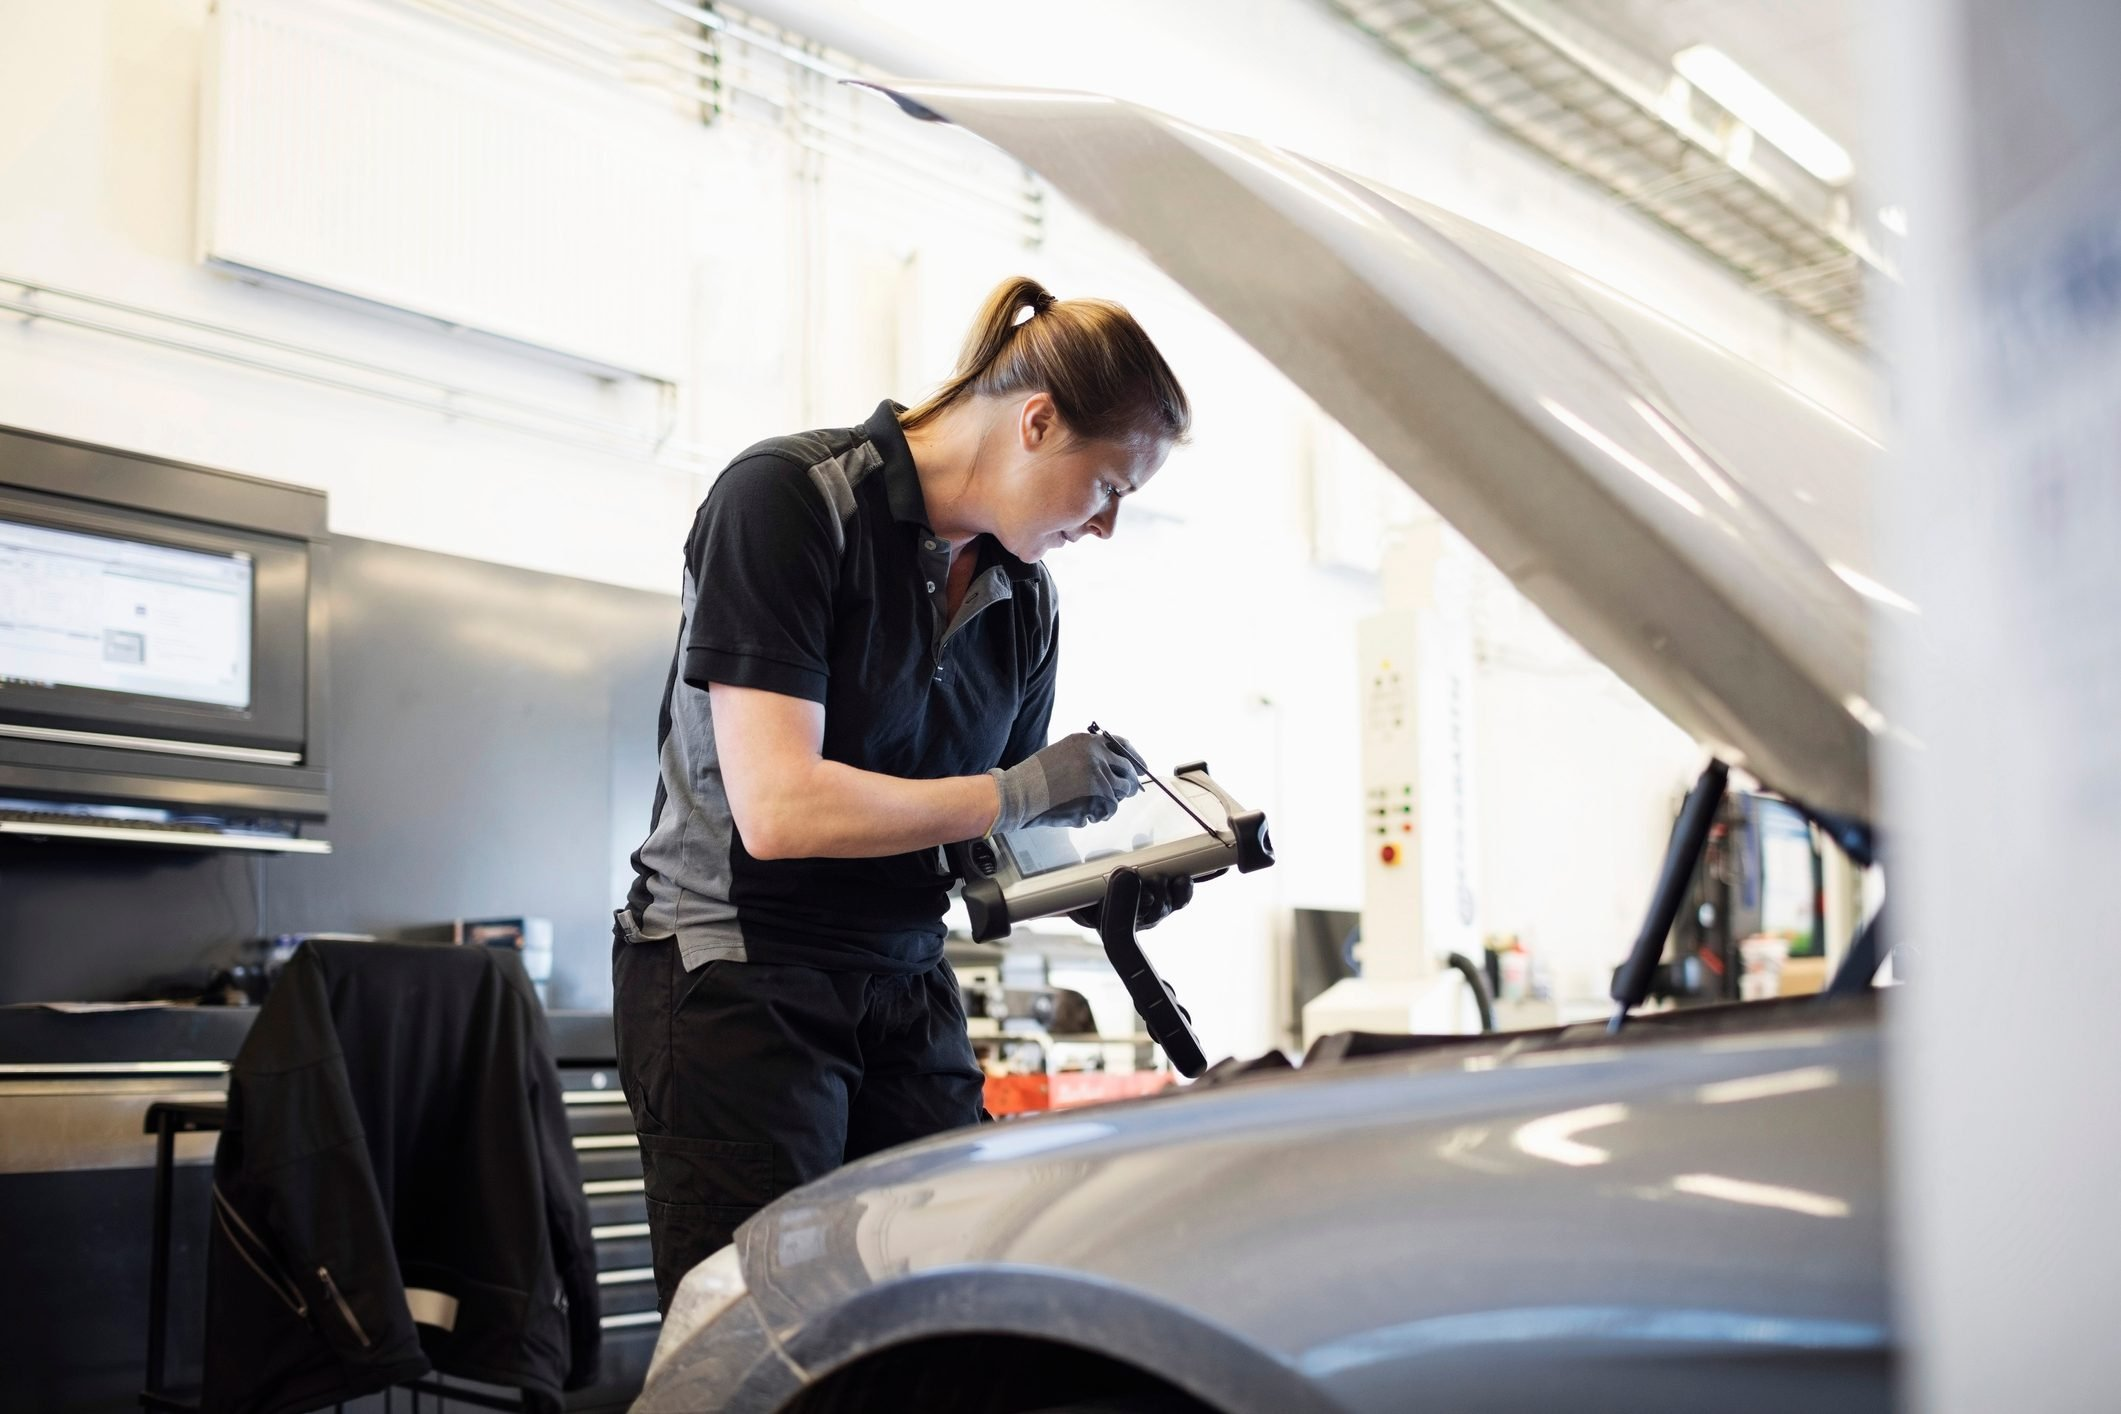 Female mechanic using technology while examining car at shop